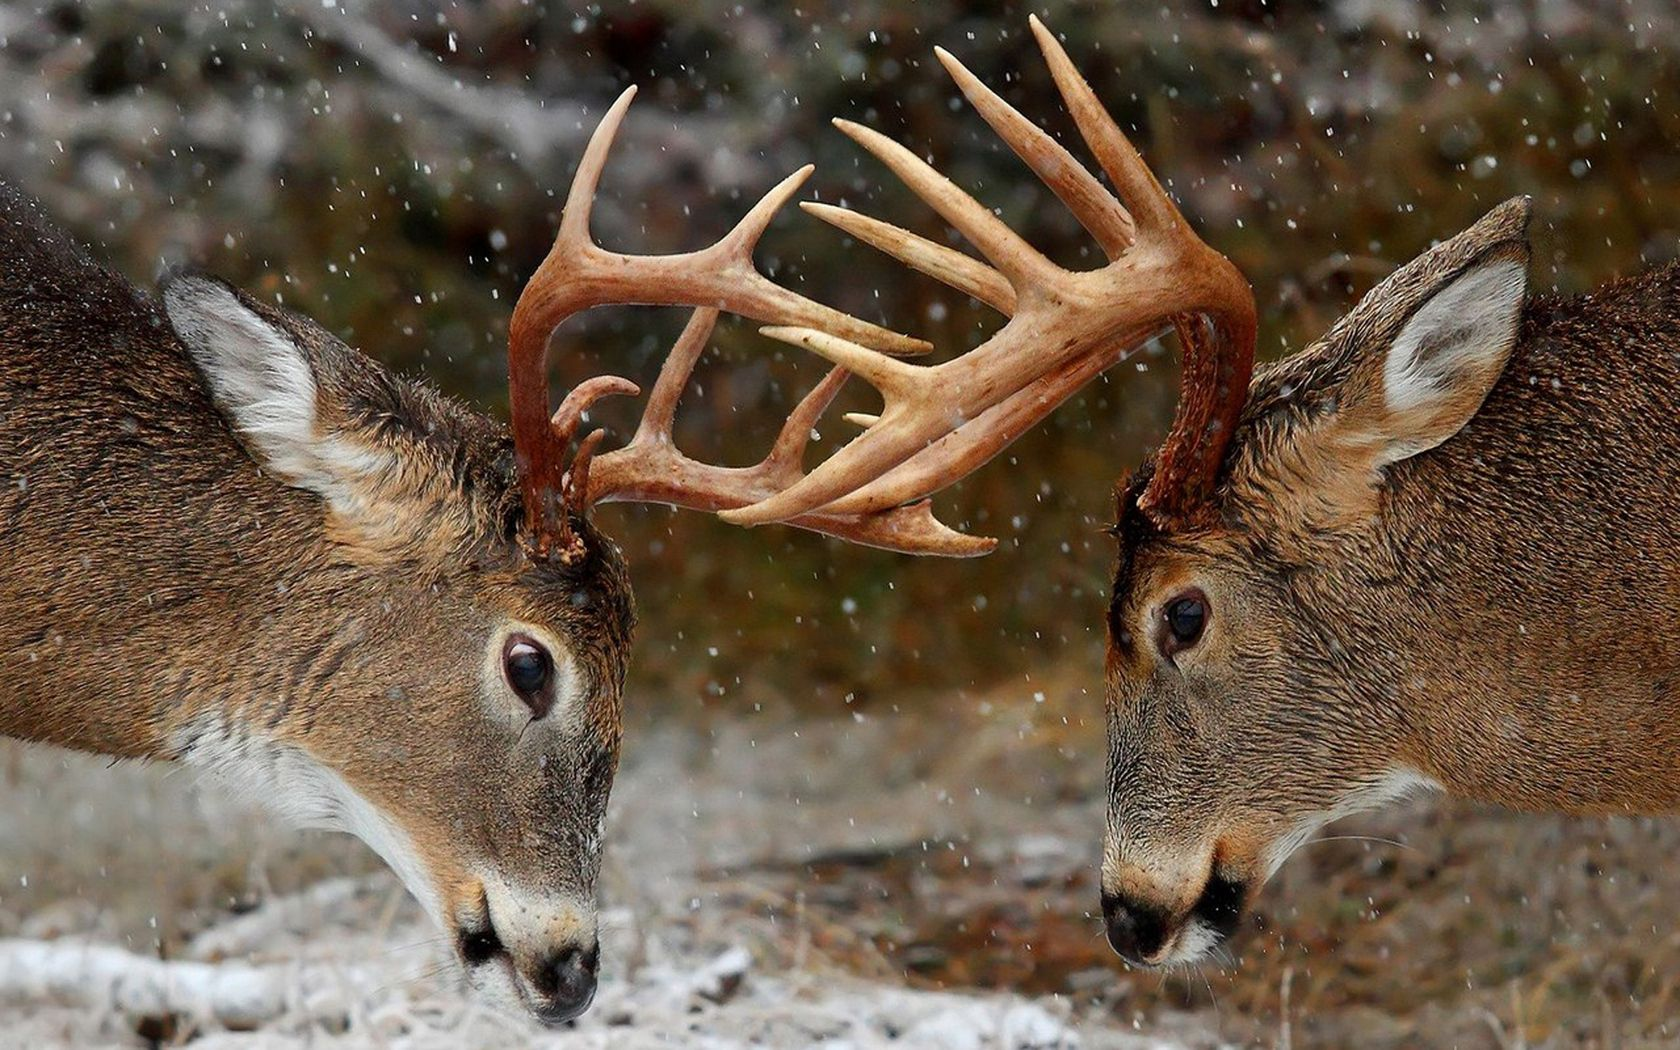 73504 download wallpaper Animals, Horns, Forest, Winter, Deers screensavers and pictures for free